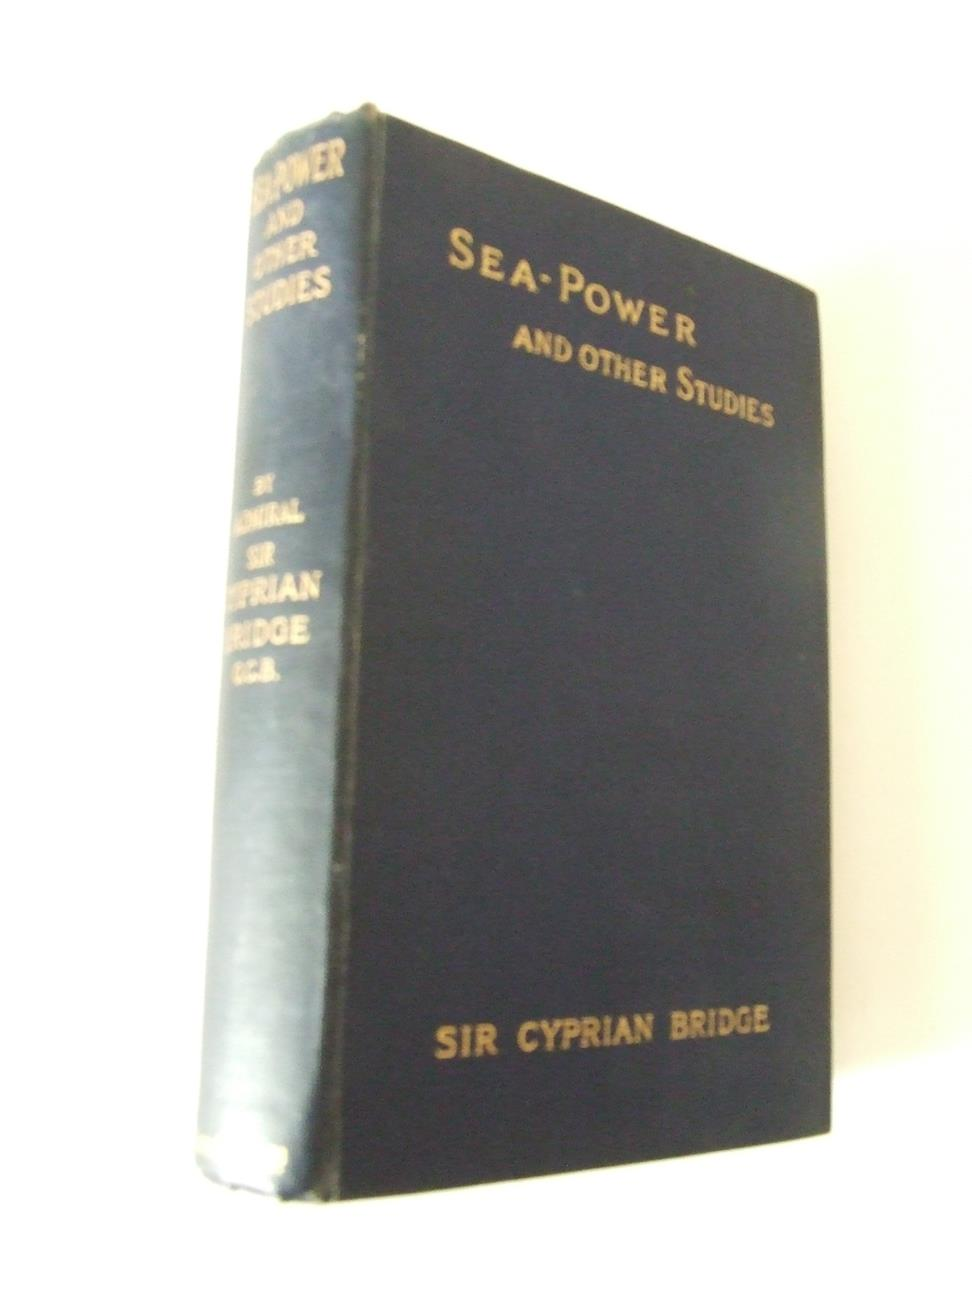 Sea-Power and other studies